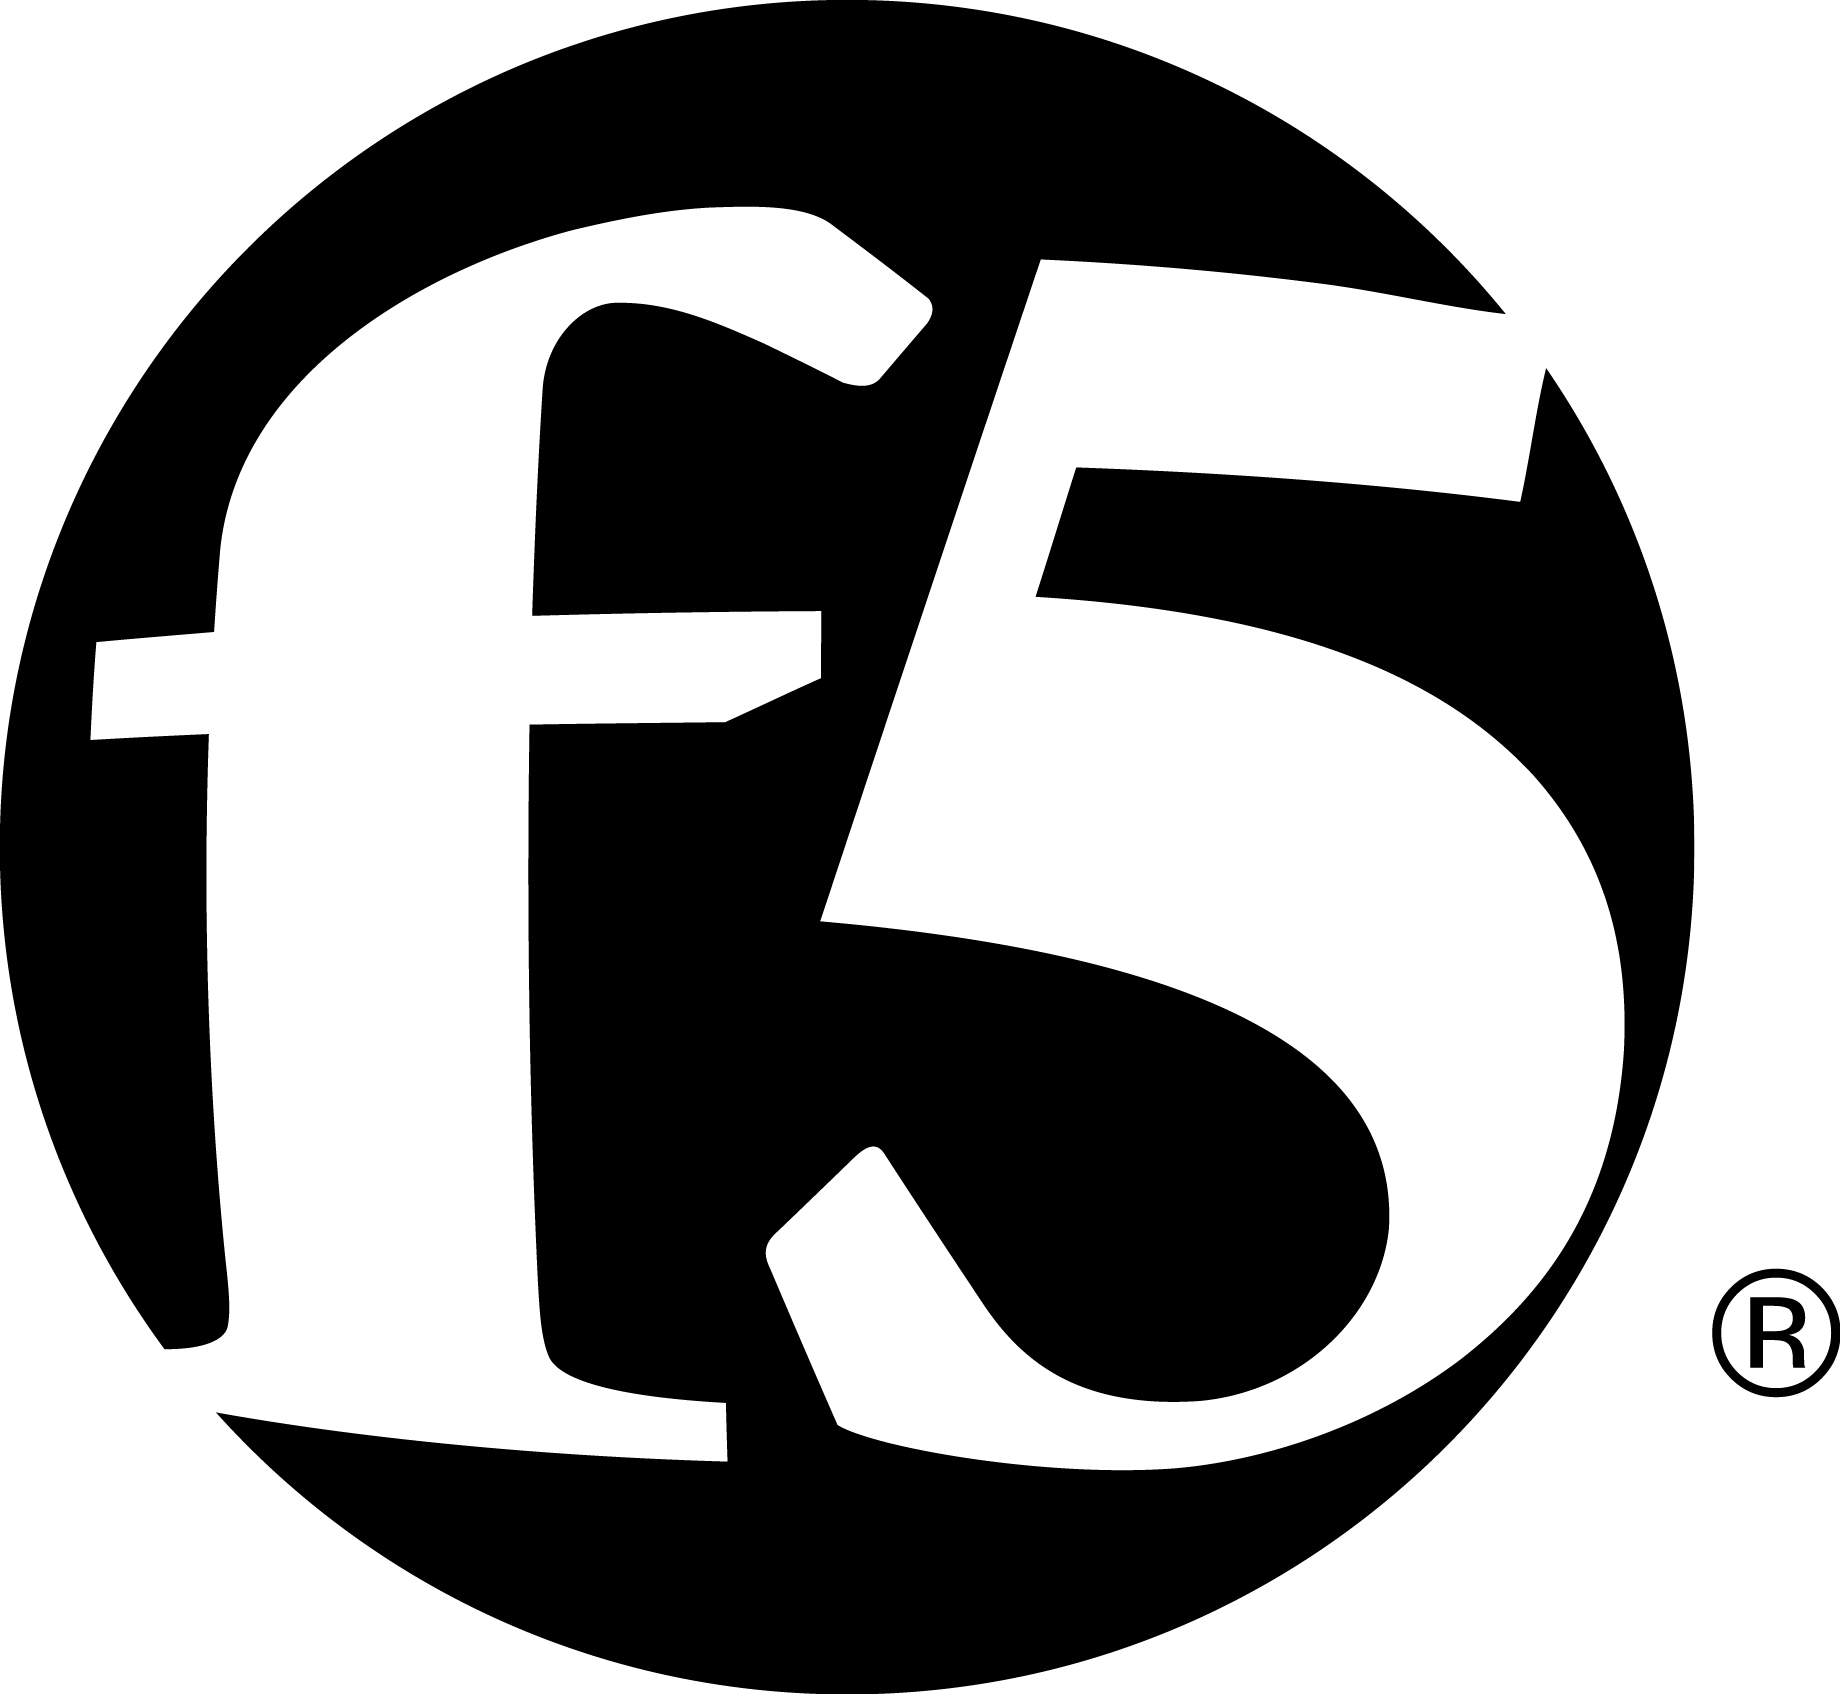 F5 Logo [Networks - f5.com] Download Vector | Logos, F5 networks, Networking